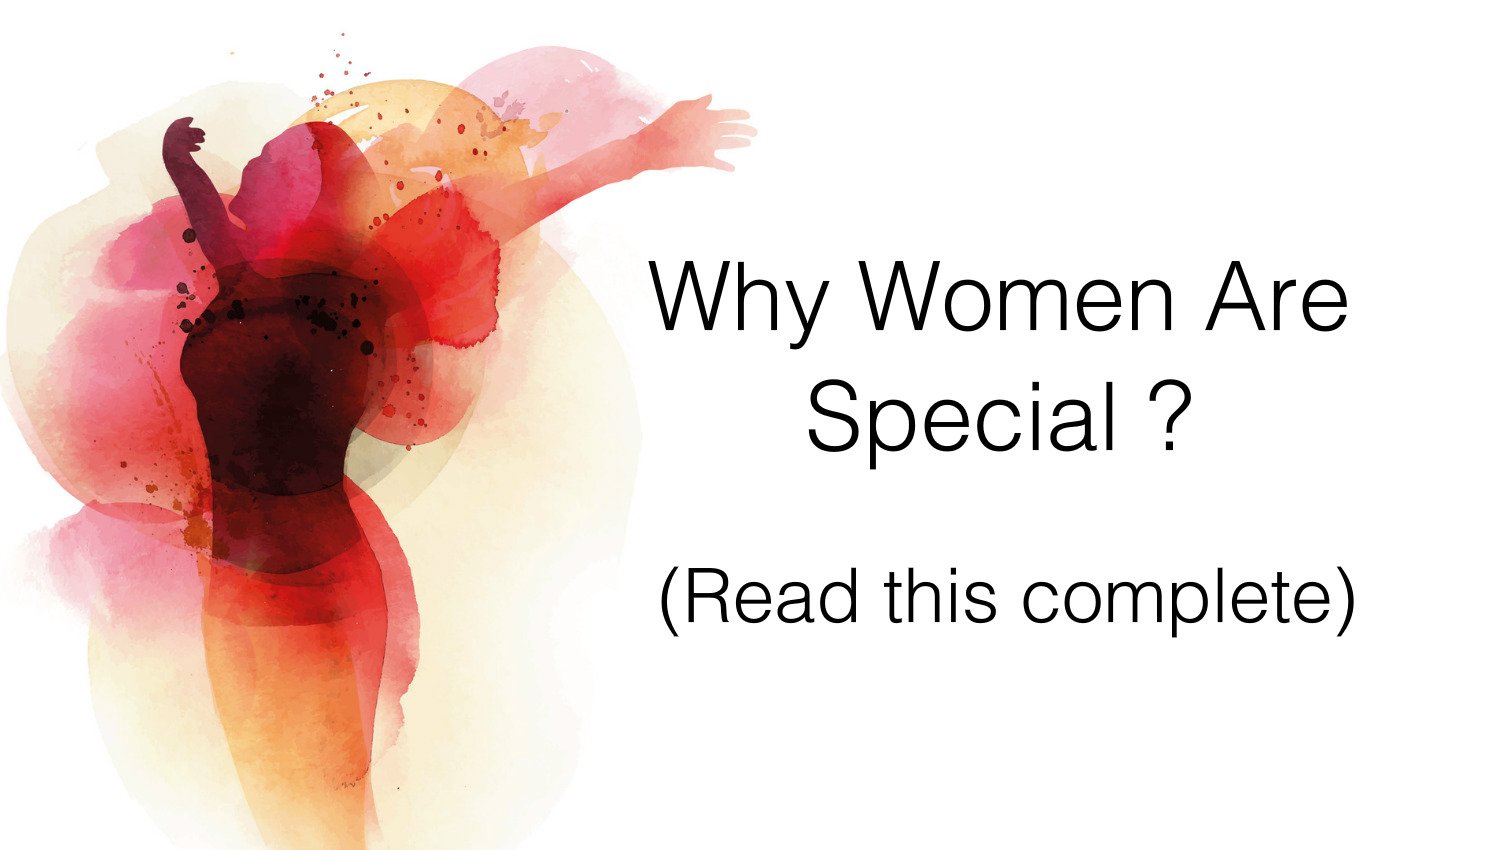 Phenomenal Woman Quotes Beautiful Quotes Why Women Are Special.read This Complete